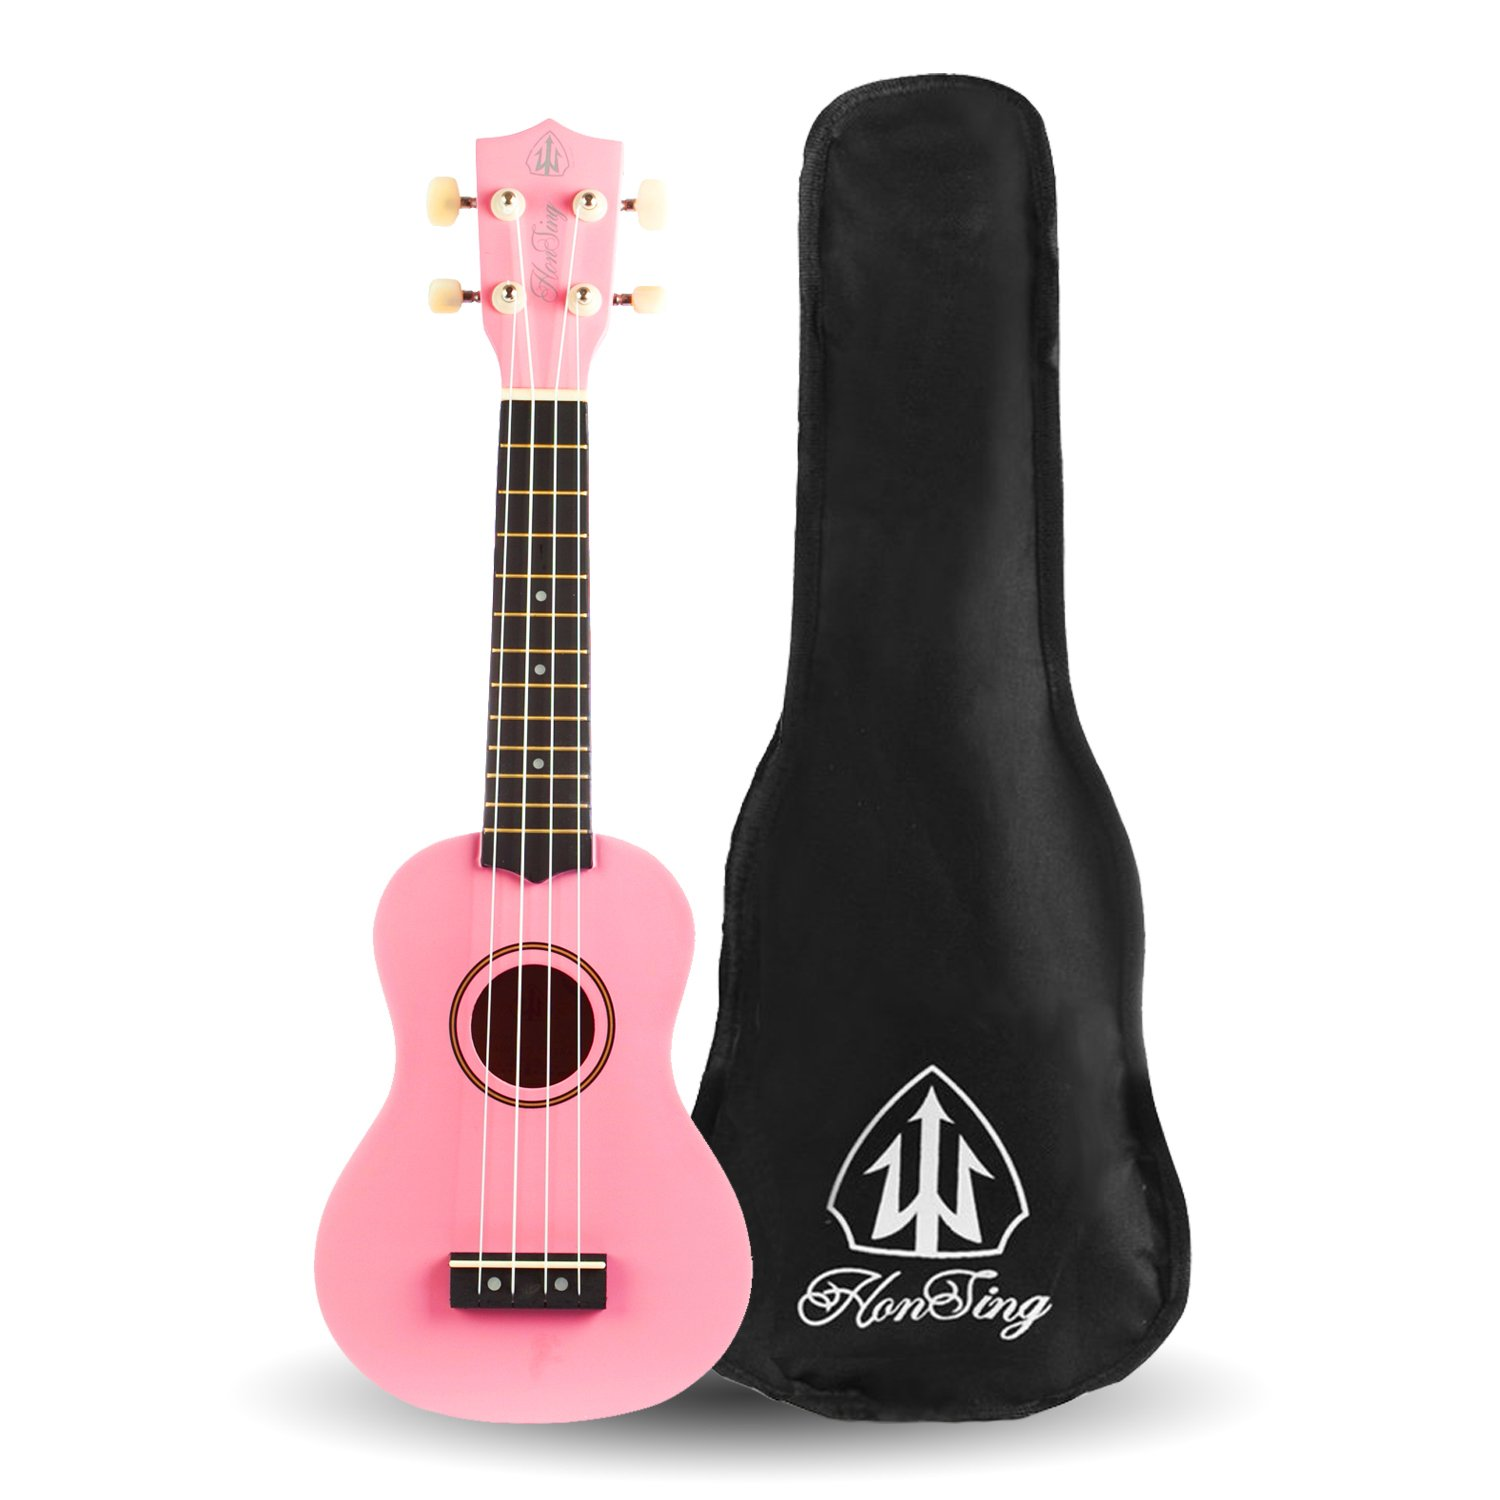 Honsing Soprano Rainbow Ukulele Beginner Hawaii kids Guitar Uke Basswood 21 inches with Gig Bag- Red Color matte finish HS-21-Red12018